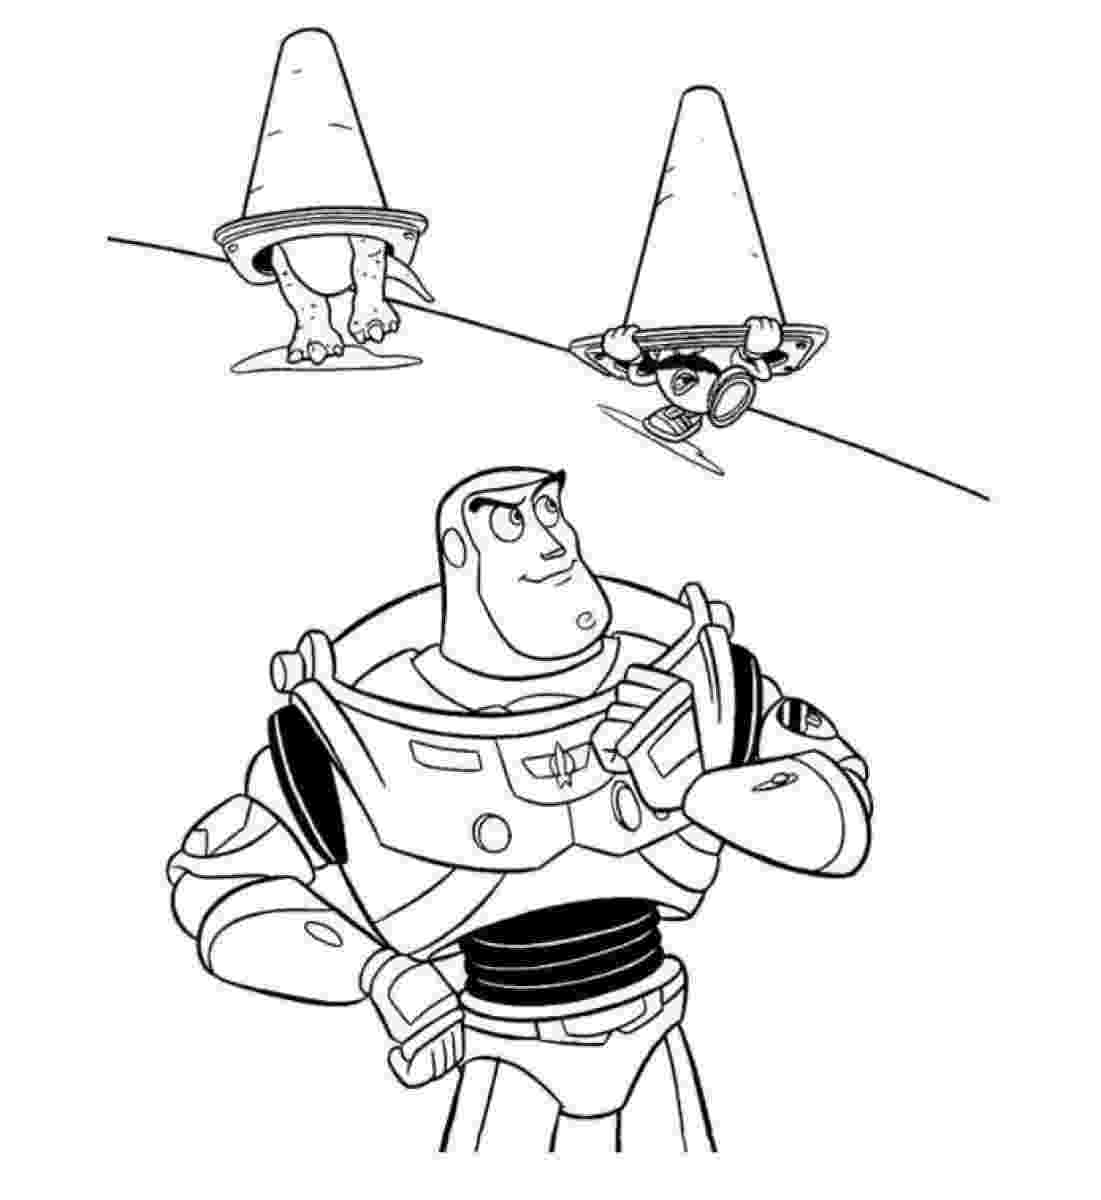 buzz lightyear coloring pages free free printable buzz lightyear coloring pages for kids coloring lightyear pages free buzz